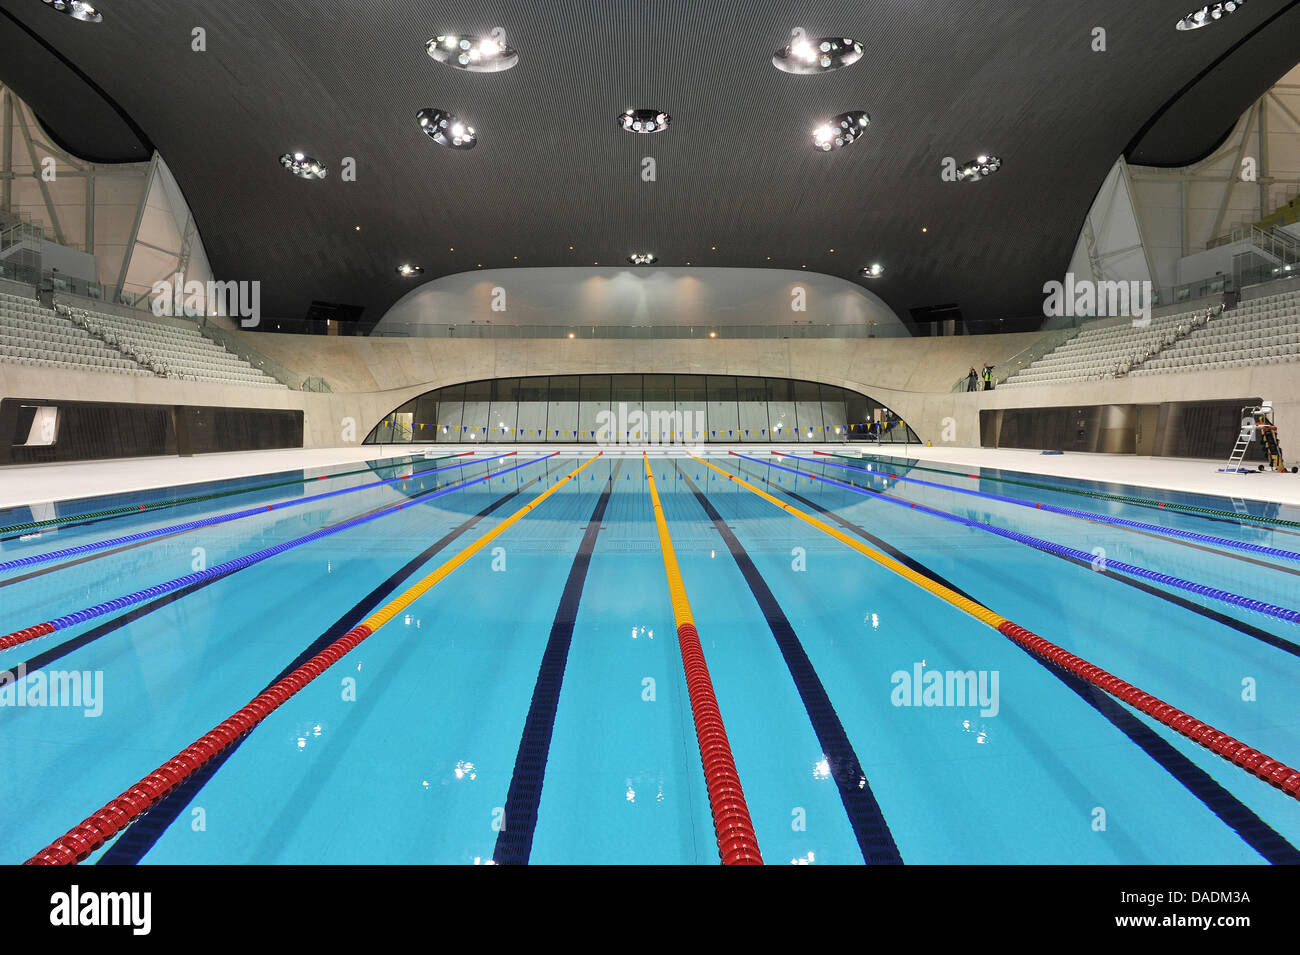 the swimming stadium aquatics centre designed by architect zaha hadid is seen with the swimming pool for the swimming competitions at the olympic park in - Olympic Swimming Pool 2012